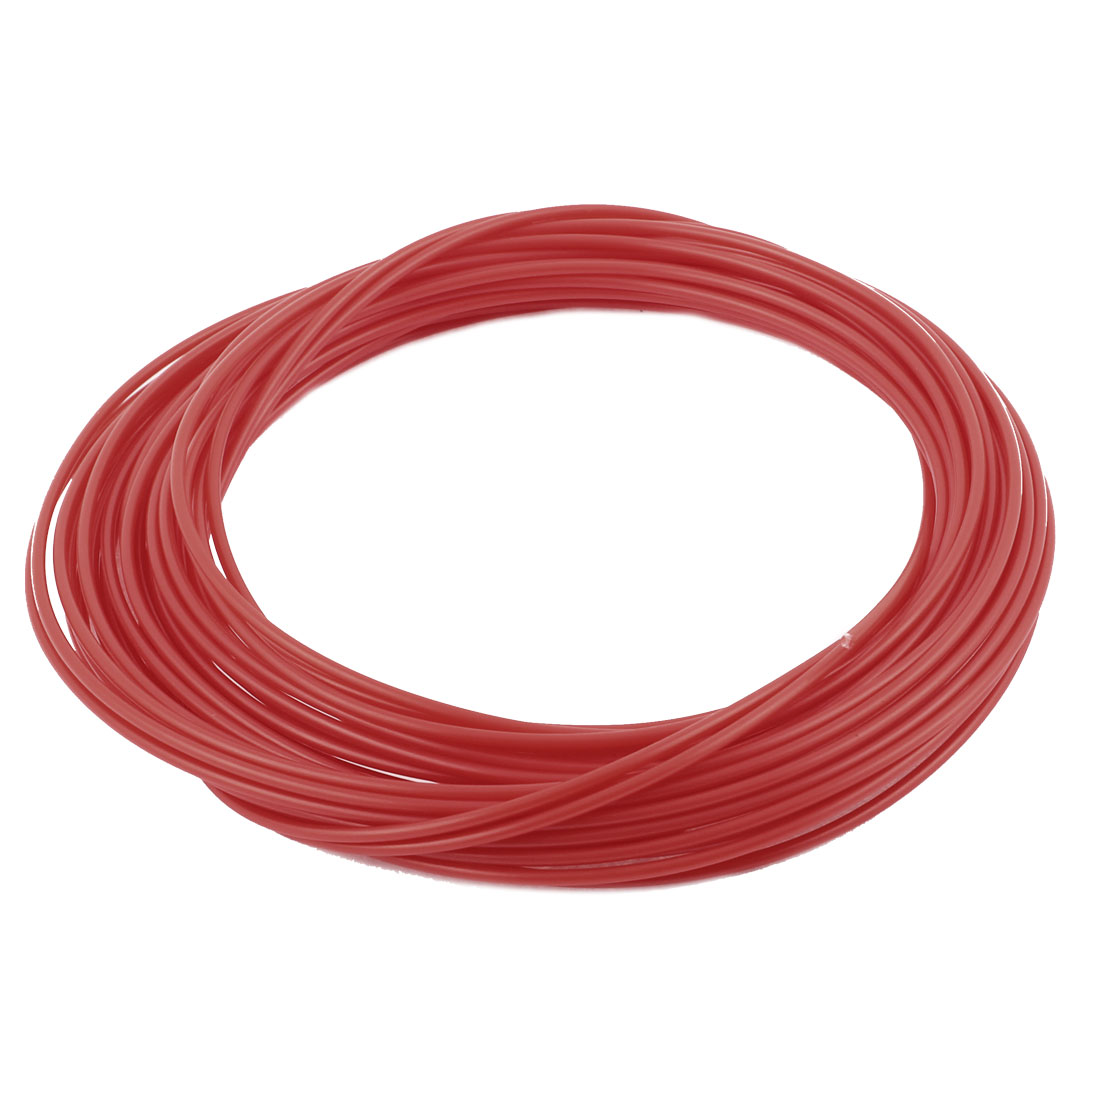 10m 3D Printer Pen Painting Filament Refills ABS Printing Material Red